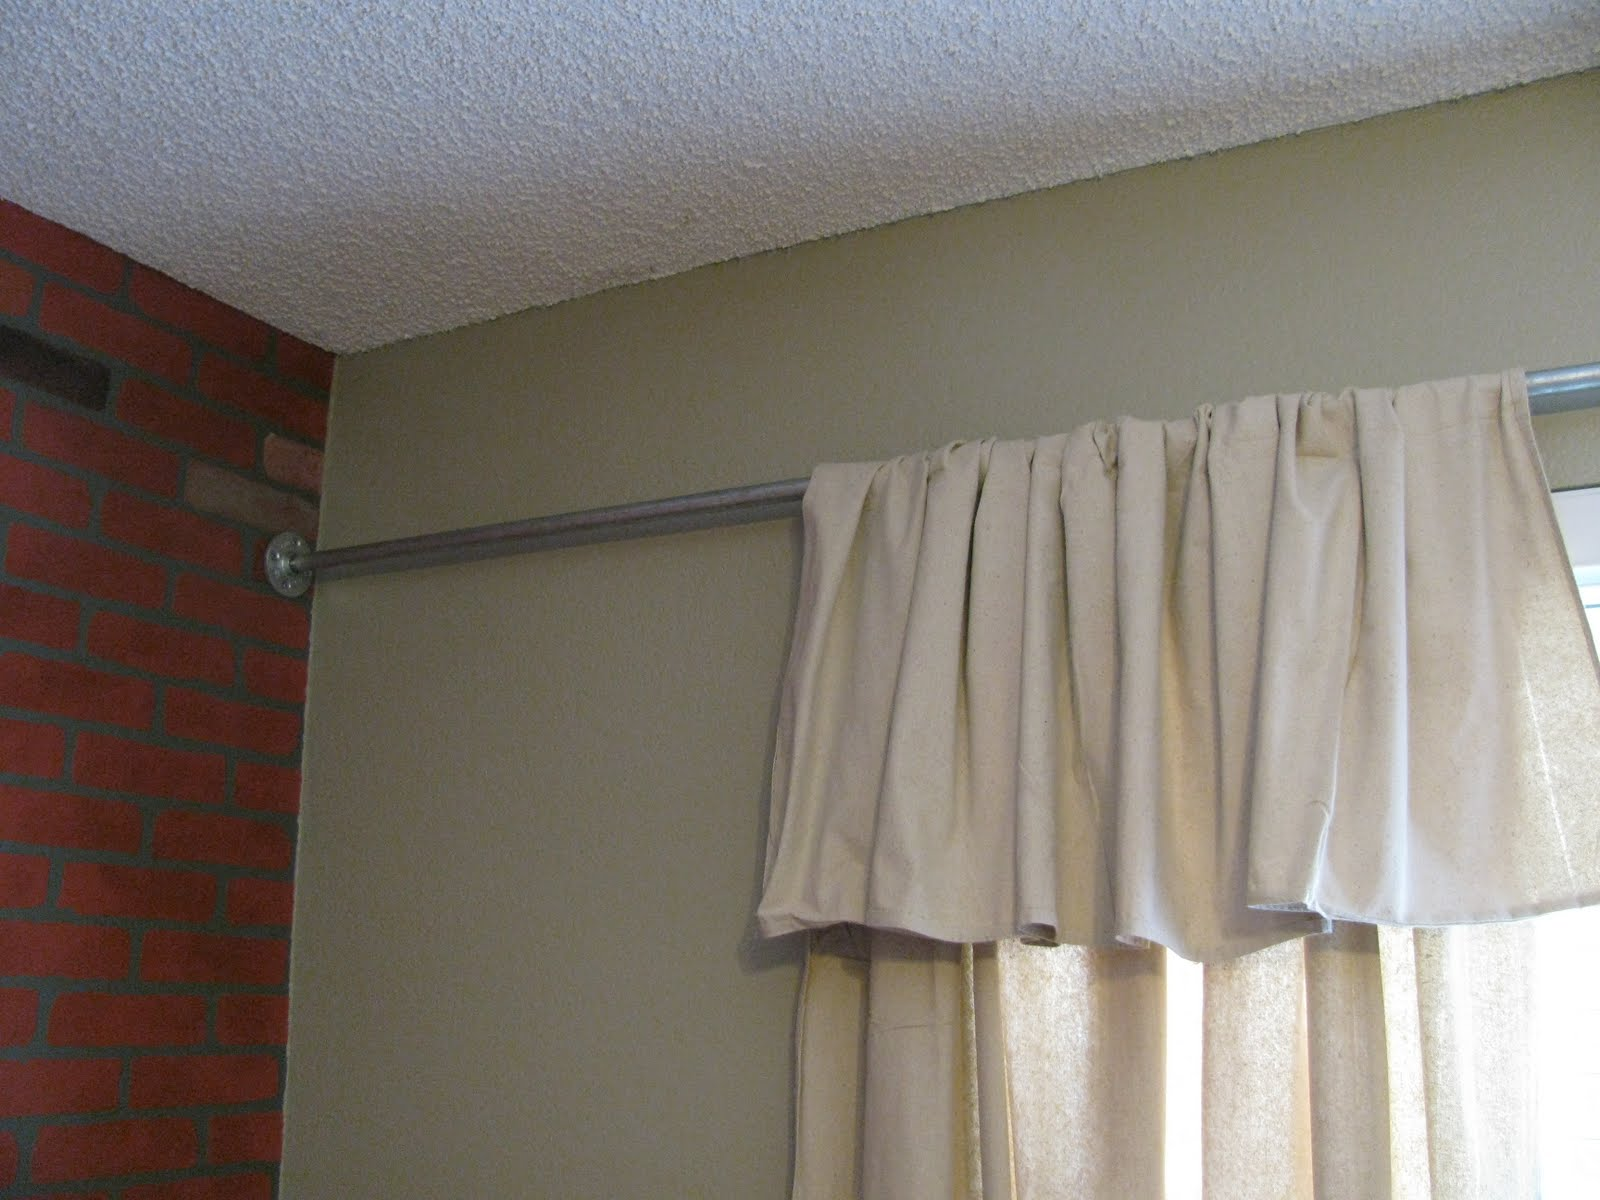 Curtain Rod For Window Against Wall Integralbook Com